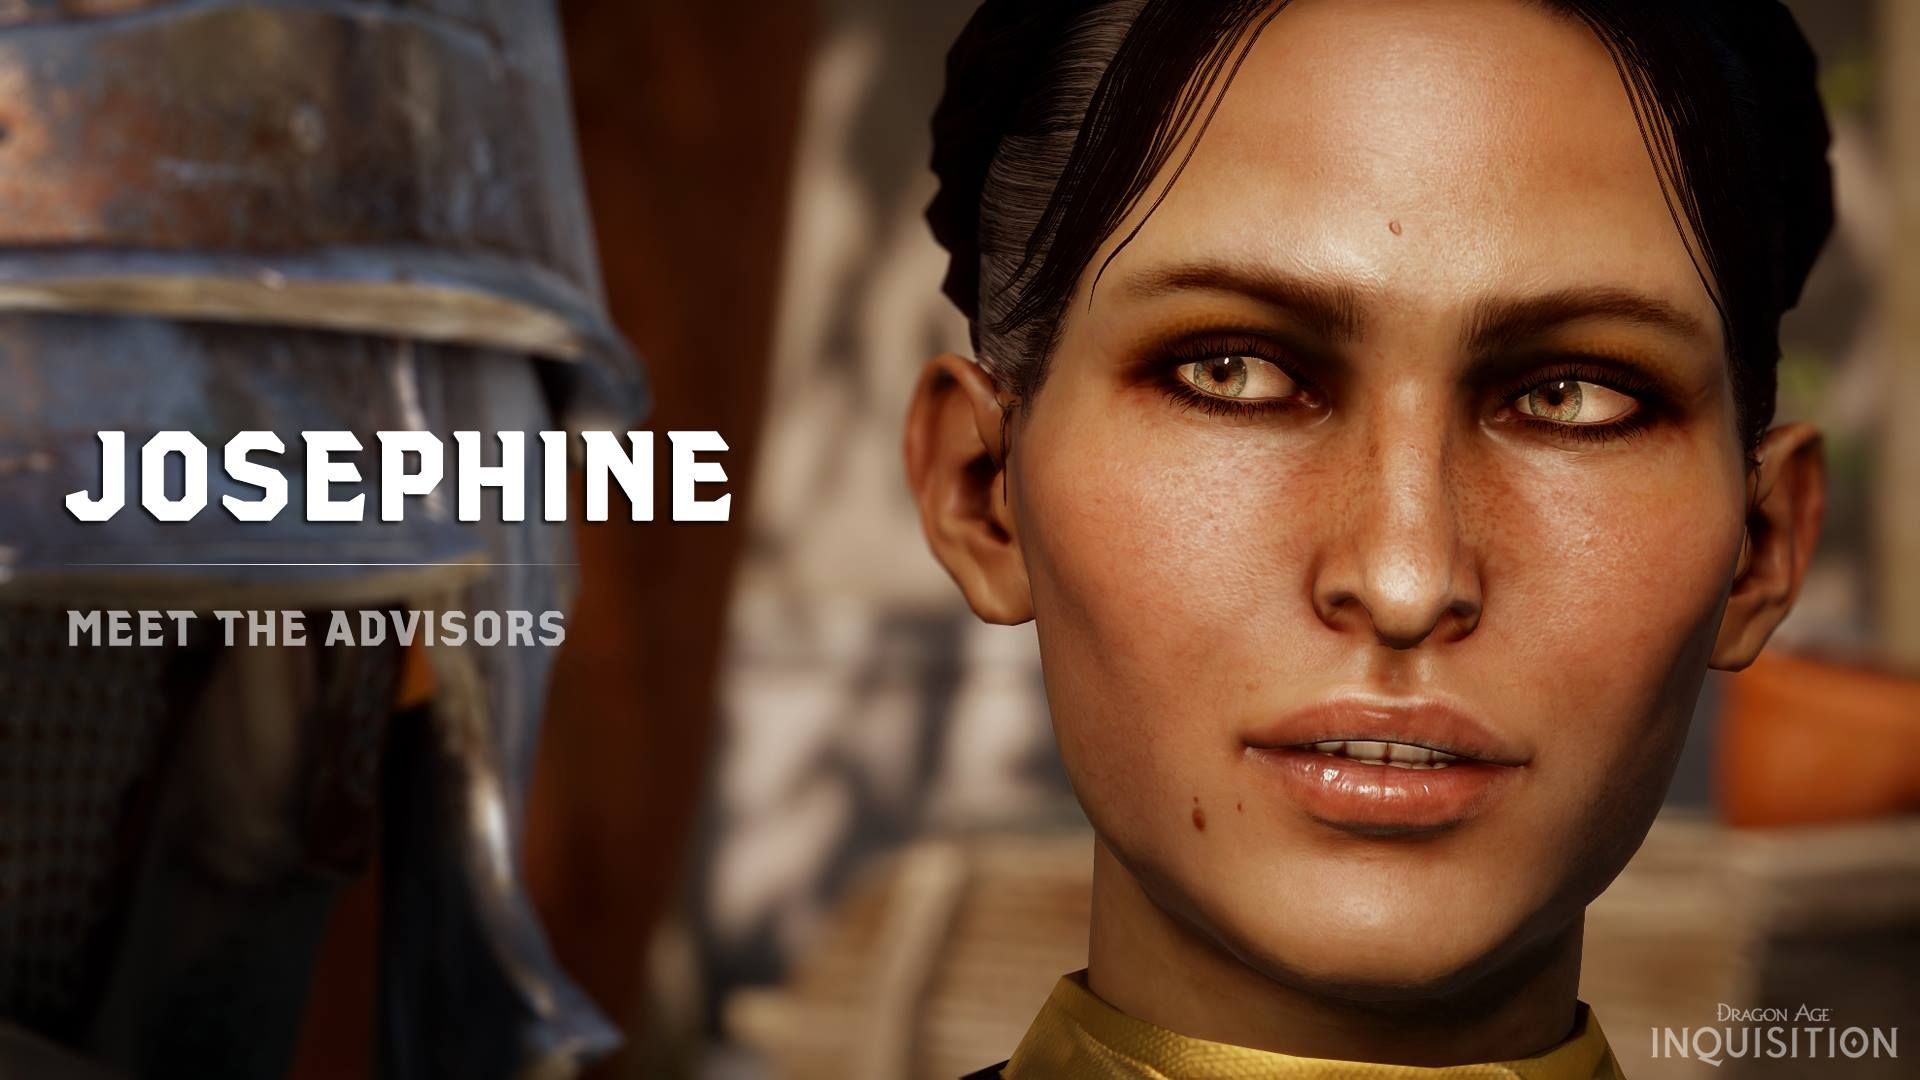 dragon age inquisition dating josephine Imagine if you could take a more mercantile approach to running the inquisition or being  flirting with josephine,  dragon age: the dating sim so.